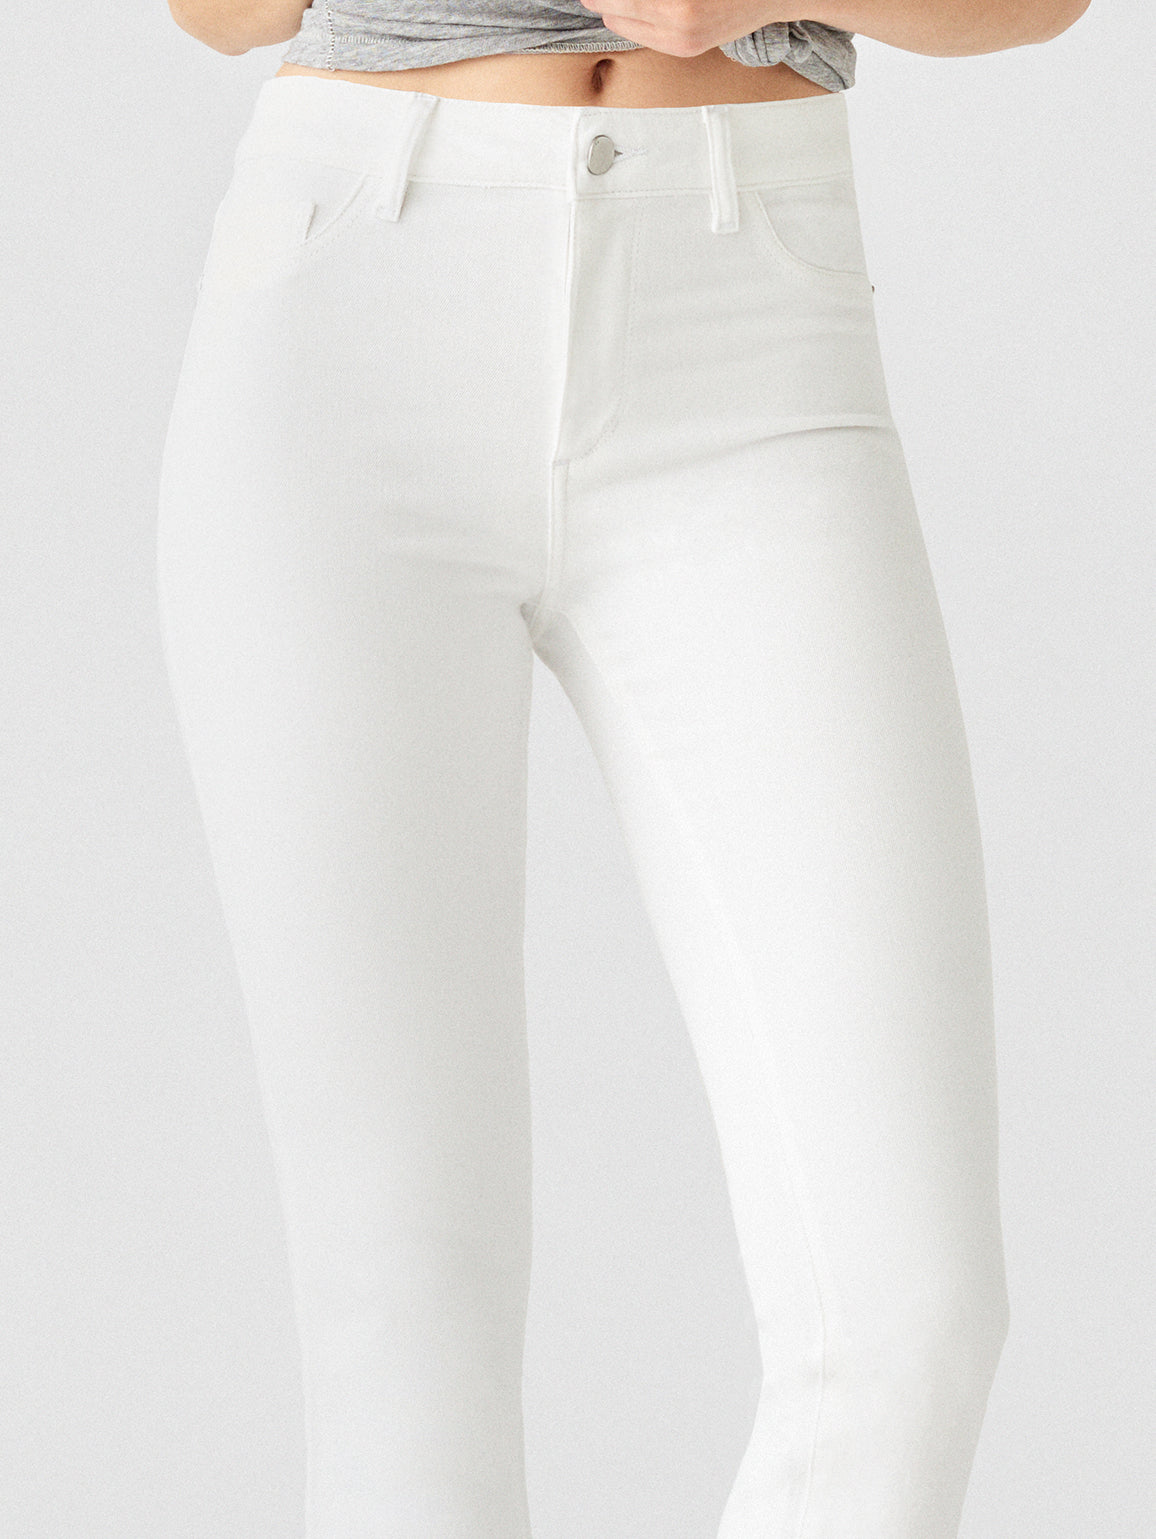 Bridget High Rise Bootcut 33"